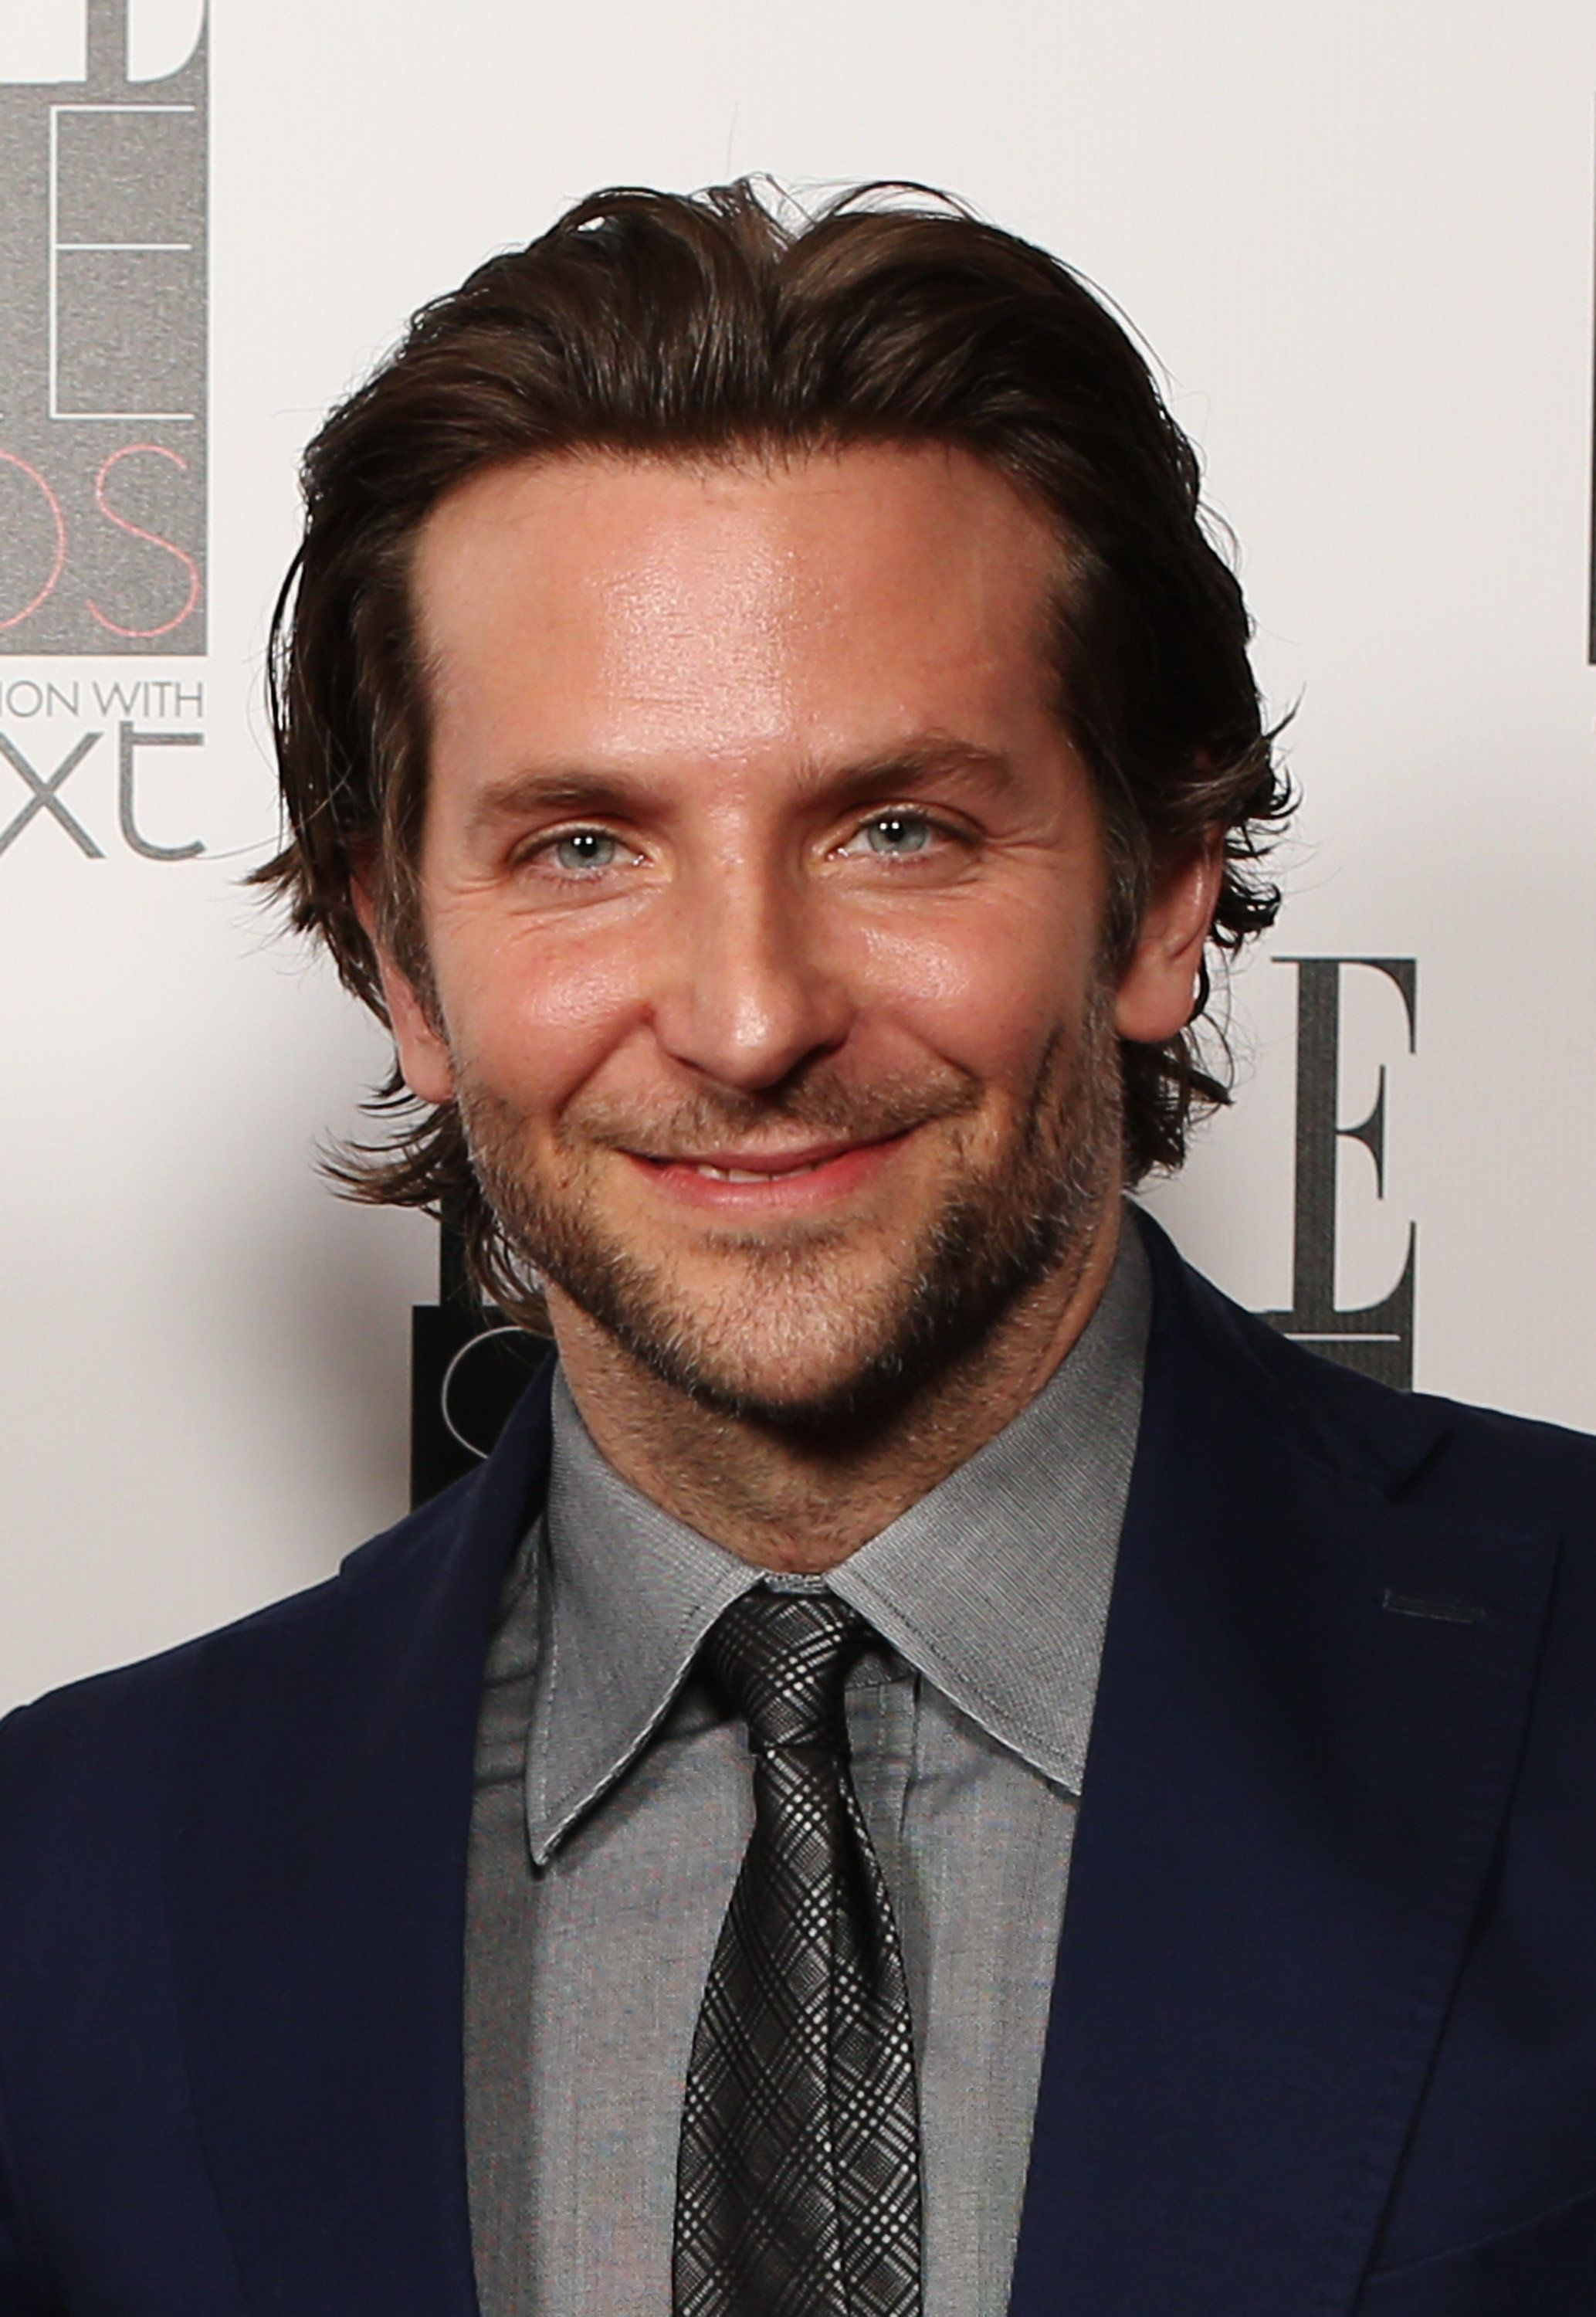 """""""Bradley Cooper has a masculine face and always has a beard. Seeing great brows like his can make a guy look like he has a great head of hair,"""" said Jennings."""